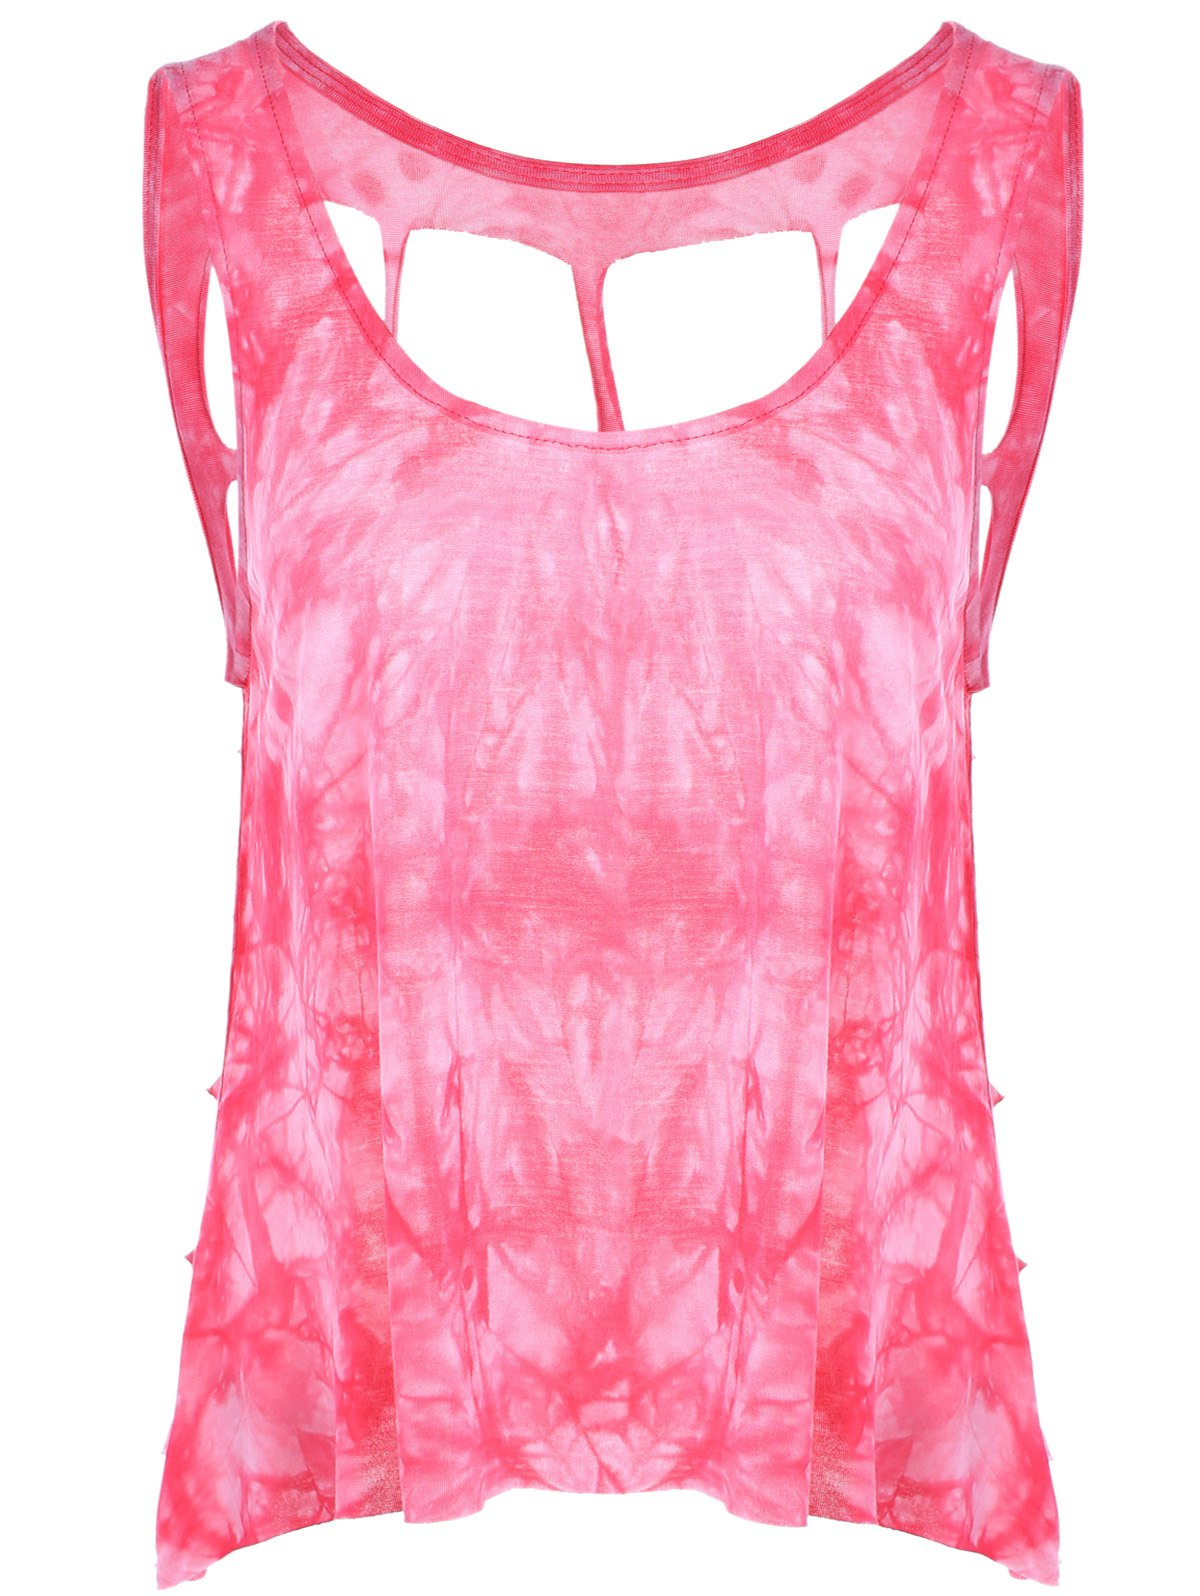 Stylish Women's ScoopNeck Tie-Dyed Tank Top - ROSE ONE SIZE(FIT SIZE XS TO M)